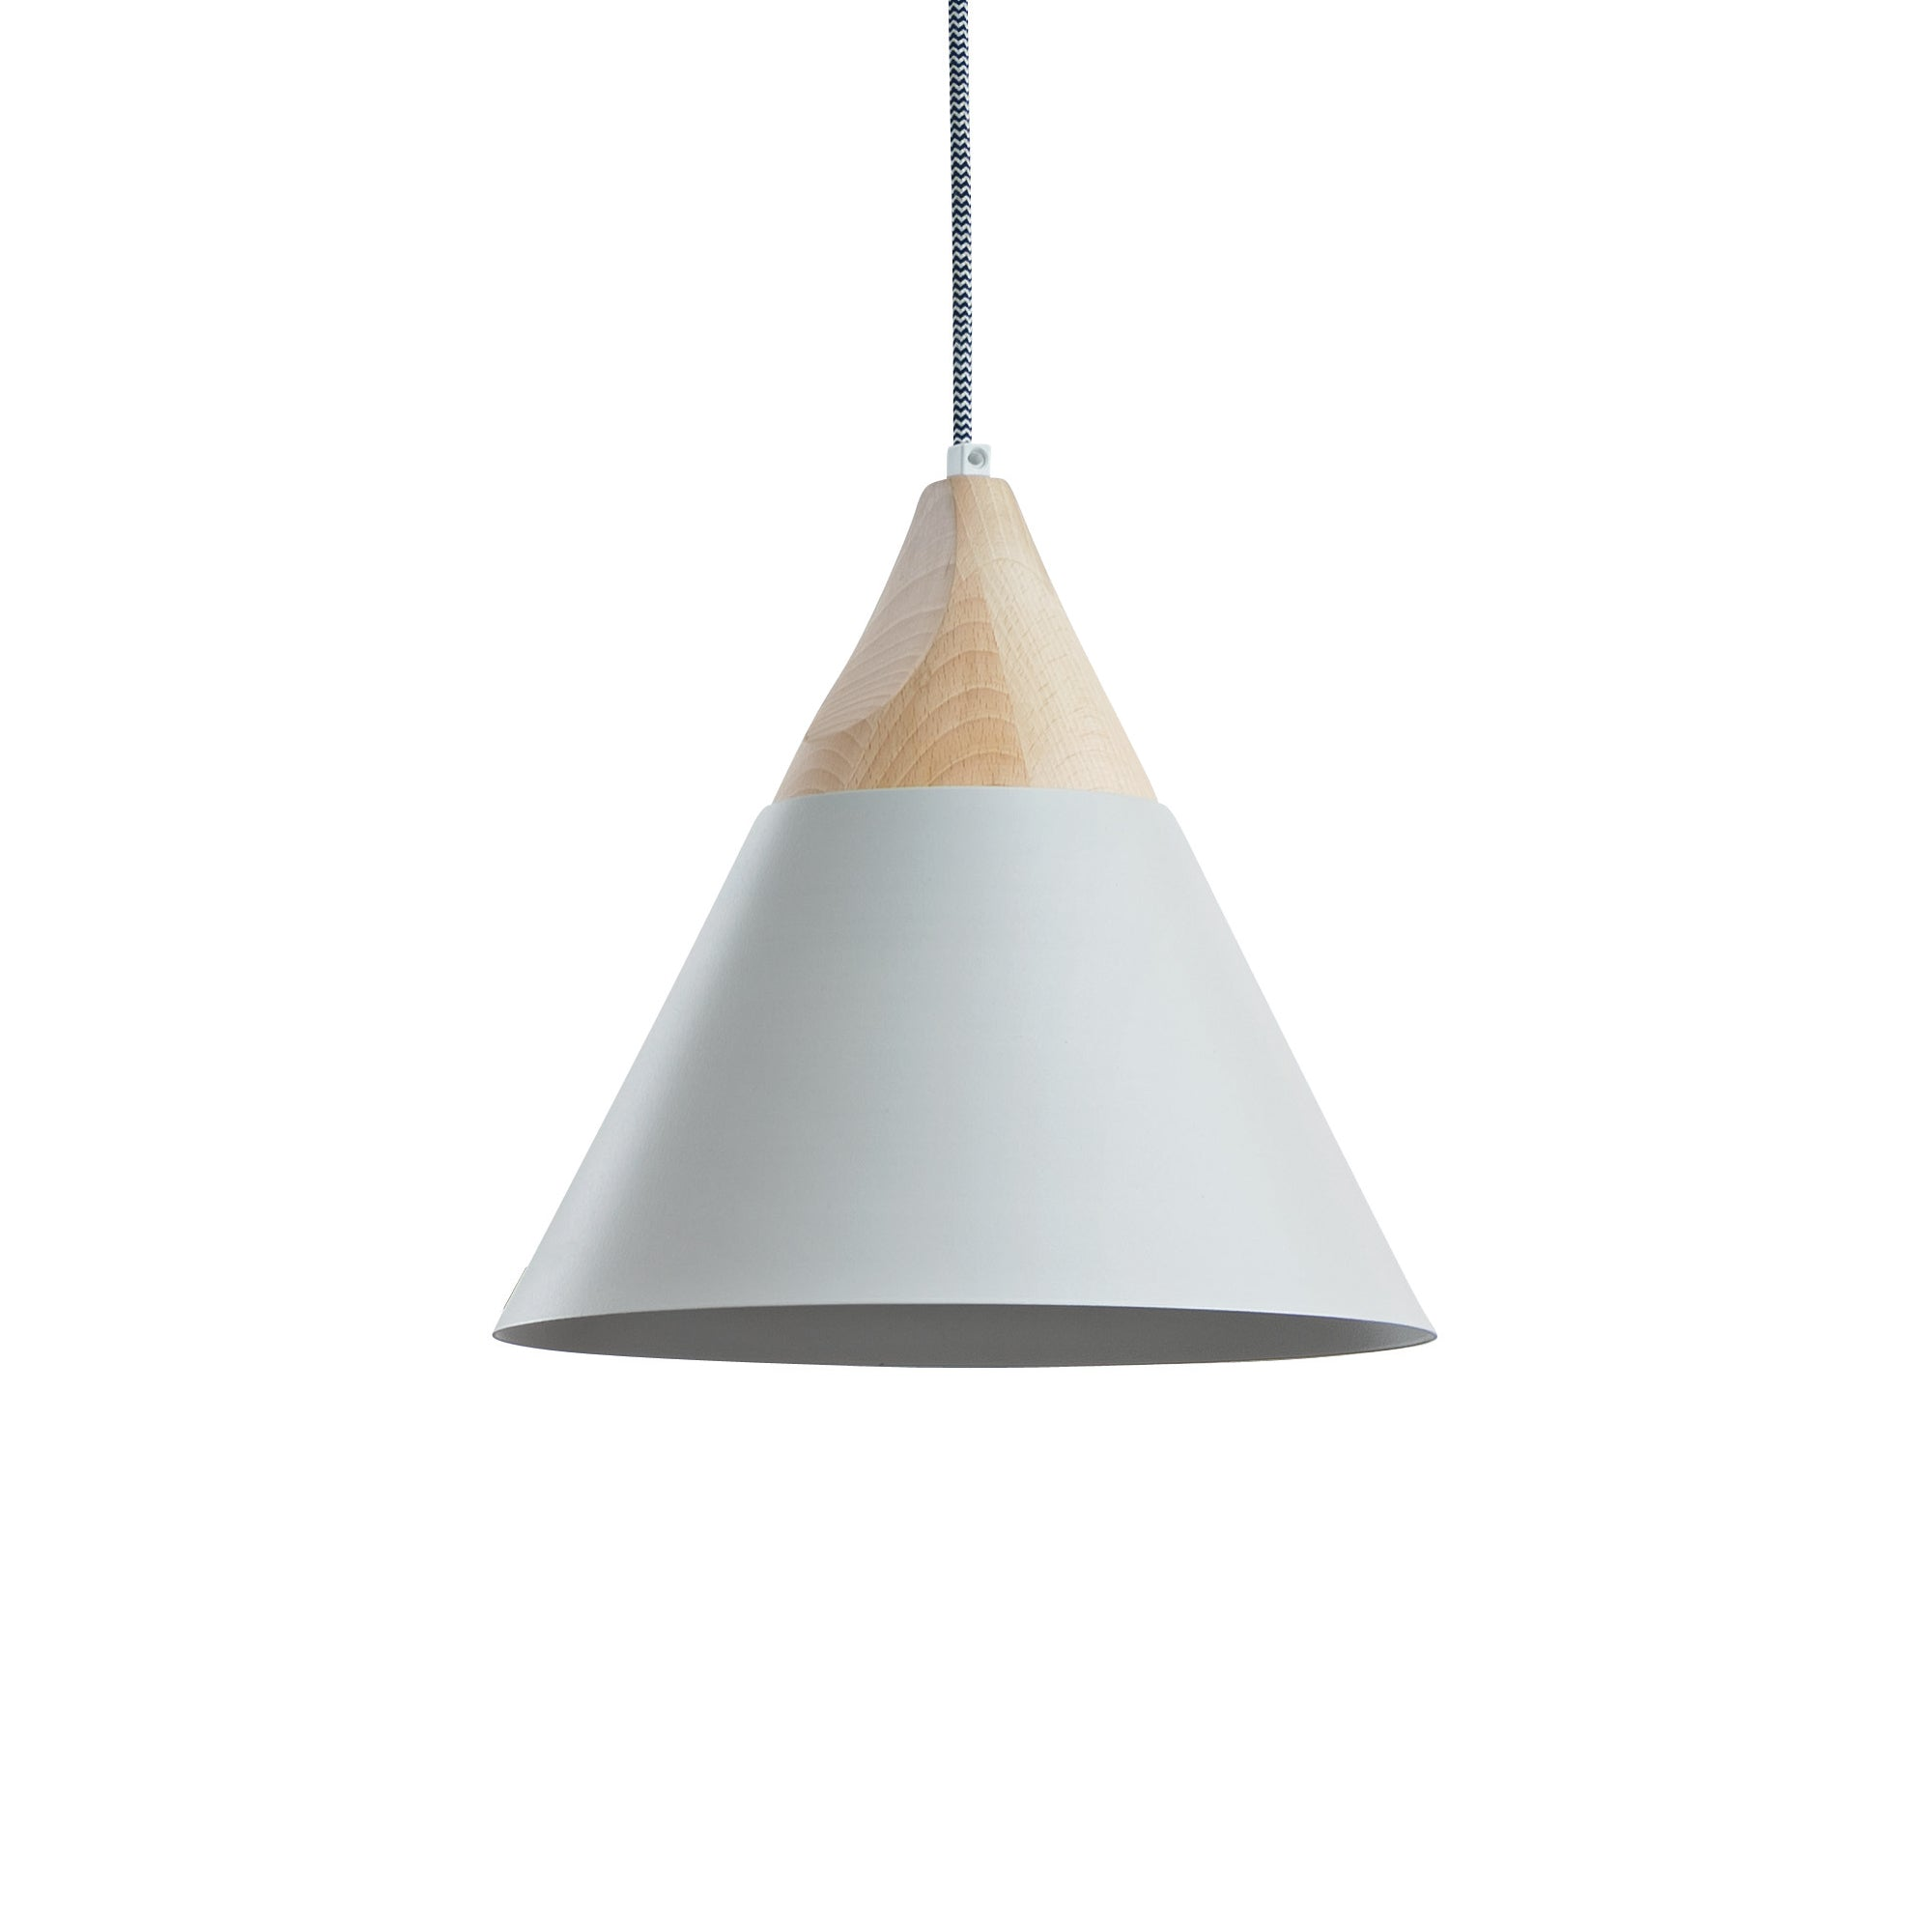 Slope Suspension Light LS 32: Metallic or Ceramic